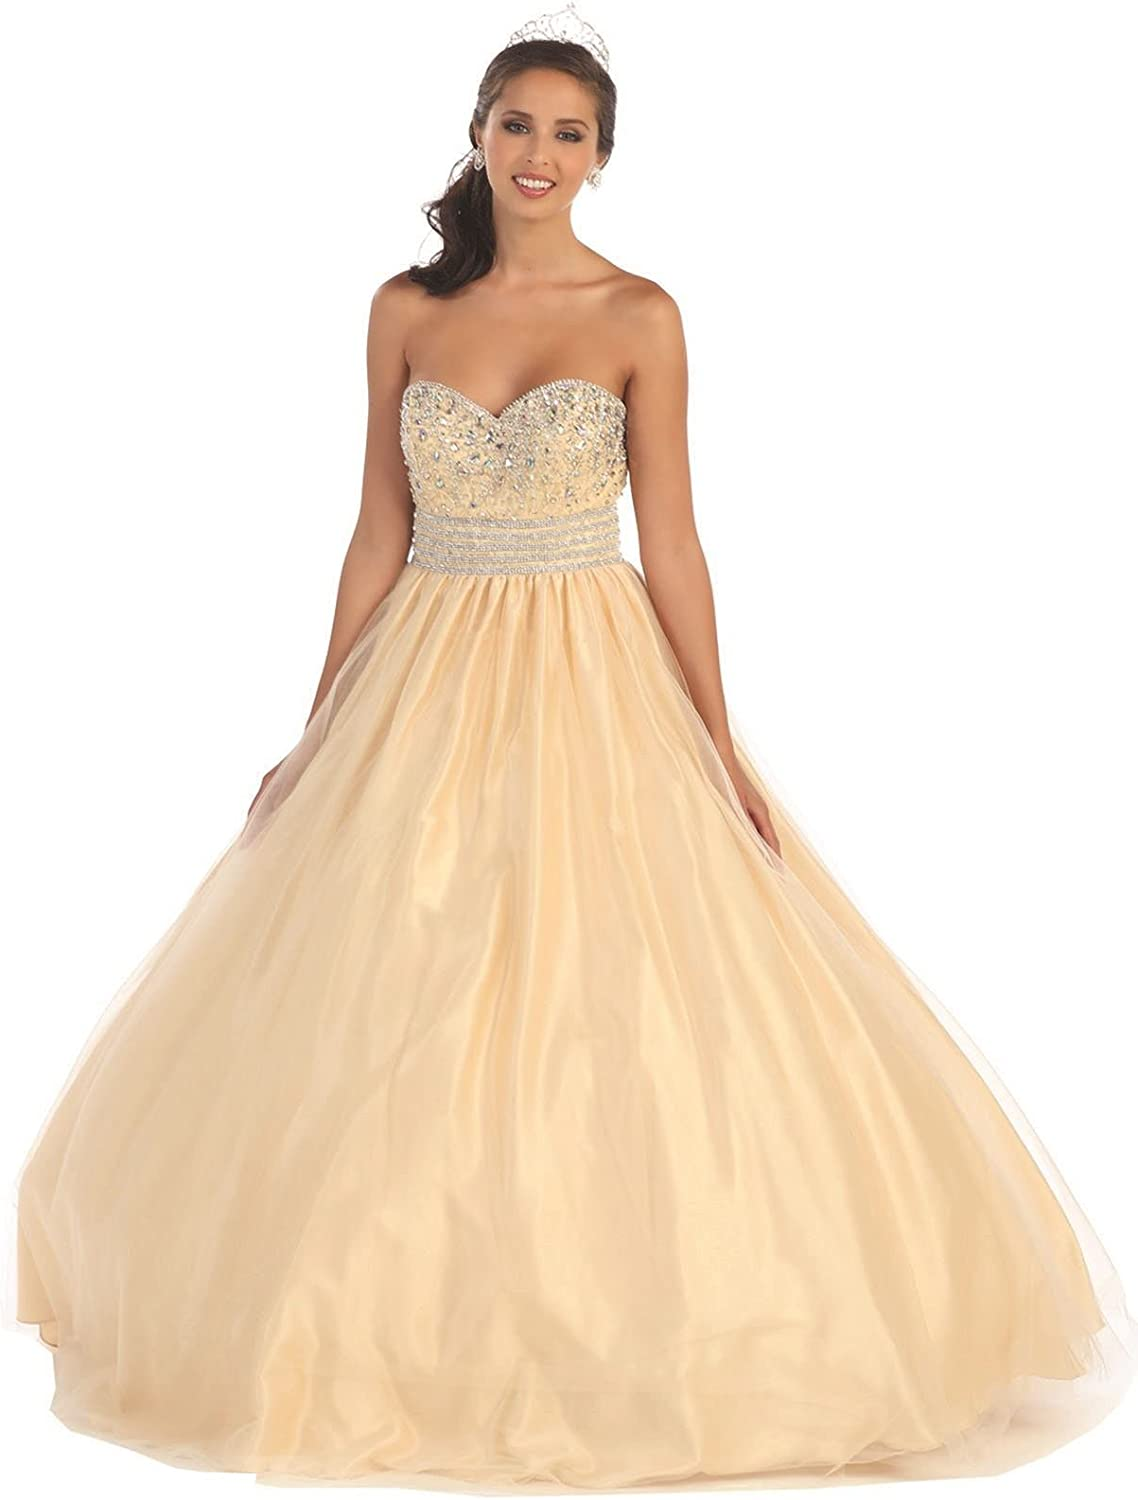 Layla K LK60 Quinceanera Designer Formal Gown